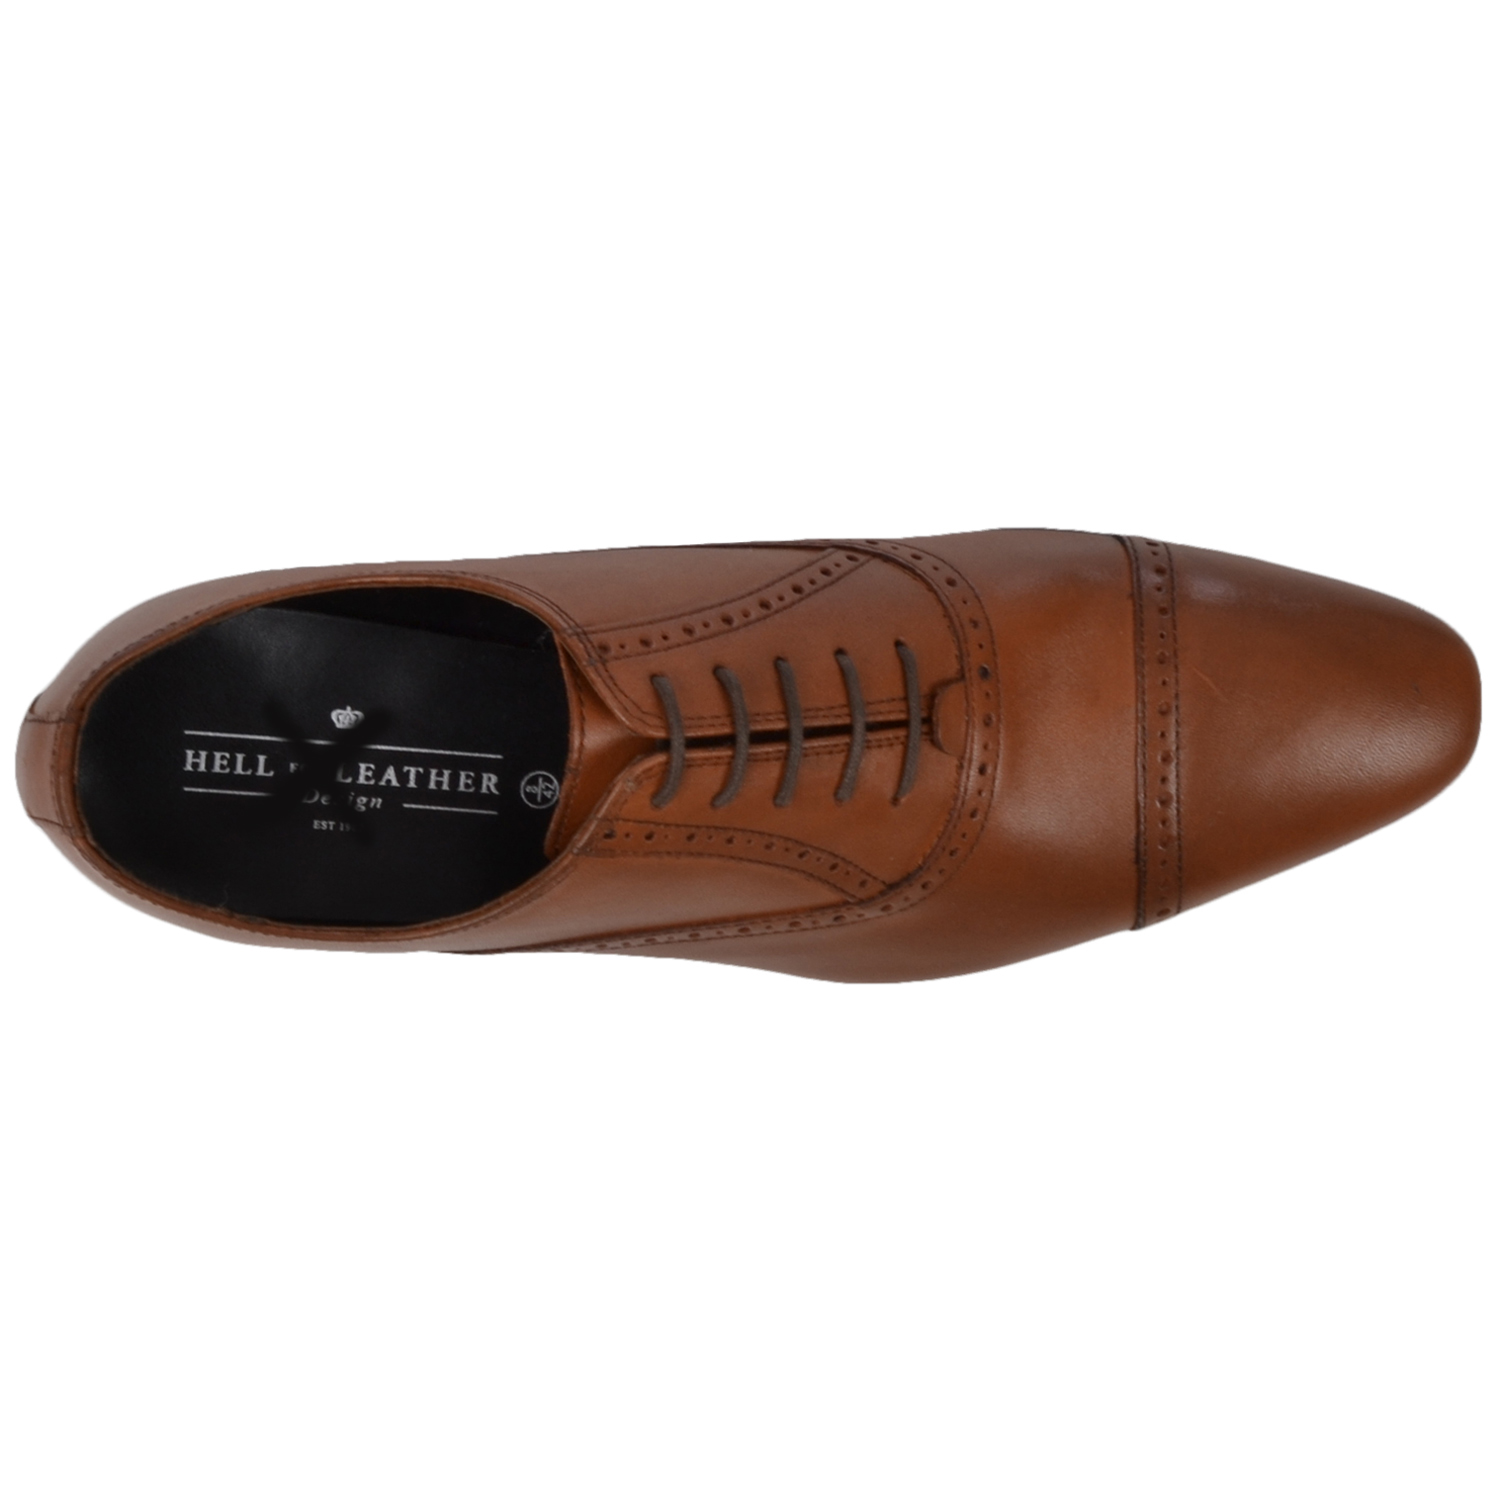 next hell for leather mens wing gap pointed toe oxford